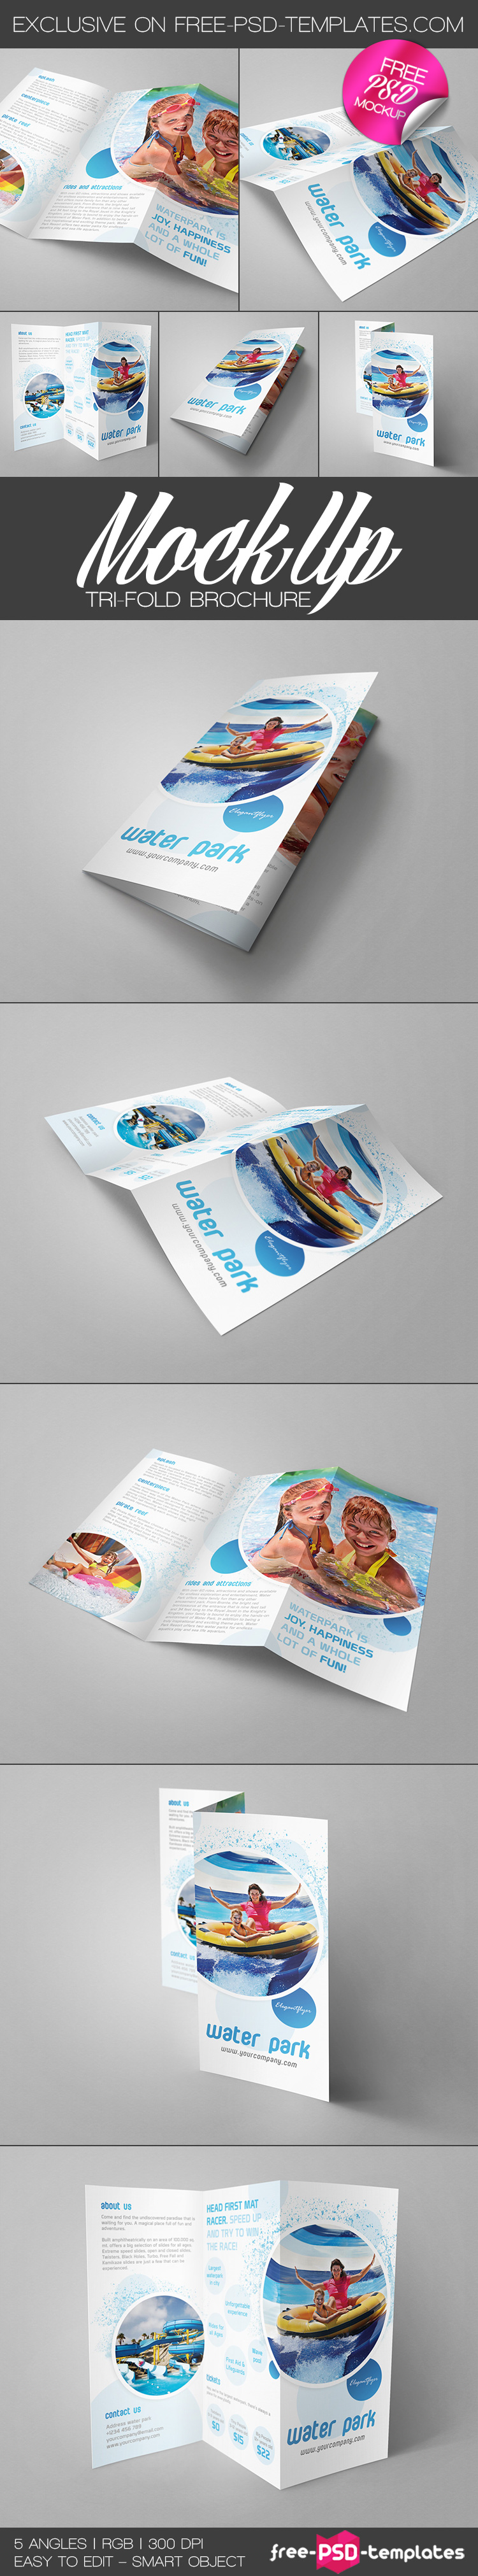 Mockup trifold brochure free mockup template in psd for Free brochure psd templates download